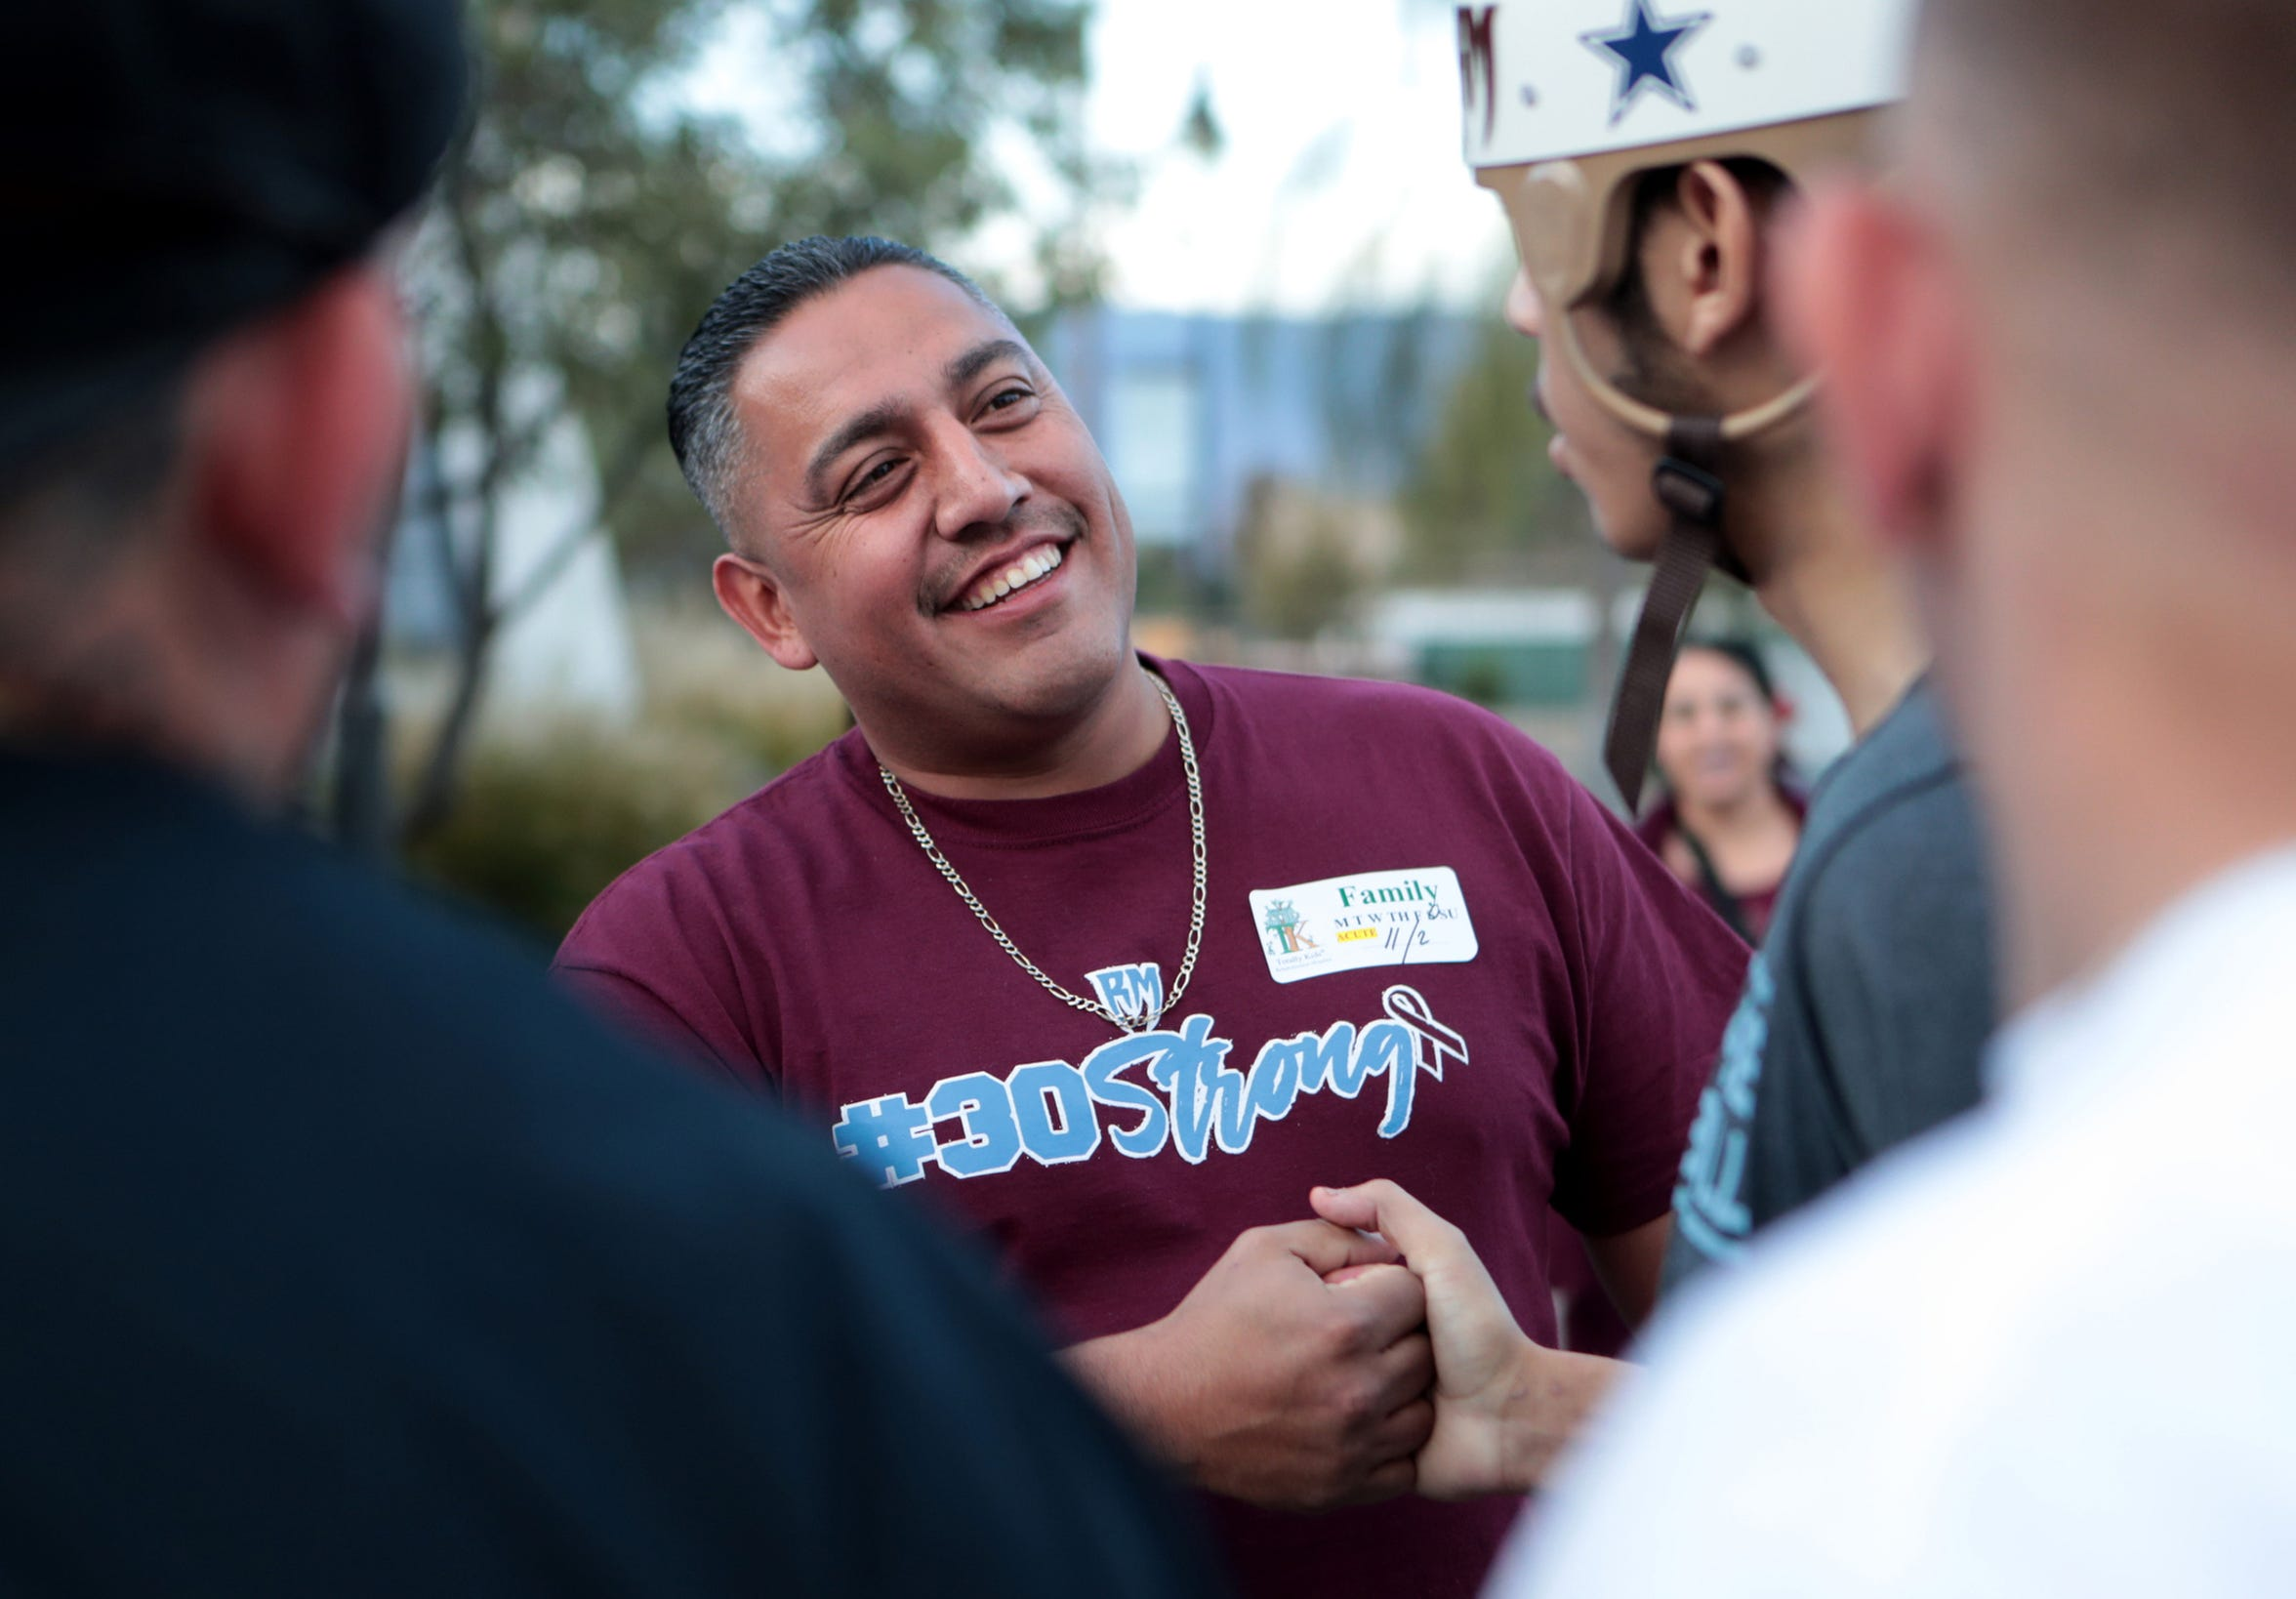 Richard Hernandez, center, smiles as he and Izzy Ramirez talk on Saturday, Nov. 2, 2019, outside the Totally Kids Rehabilitation Hospital in Loma Linda, Calif. On Sept. 27, 2019, Hernandez rushed Izzy to a nearby fire station where emergency personnel provided medical help. Doctors say his urgency saved Izzy's life.